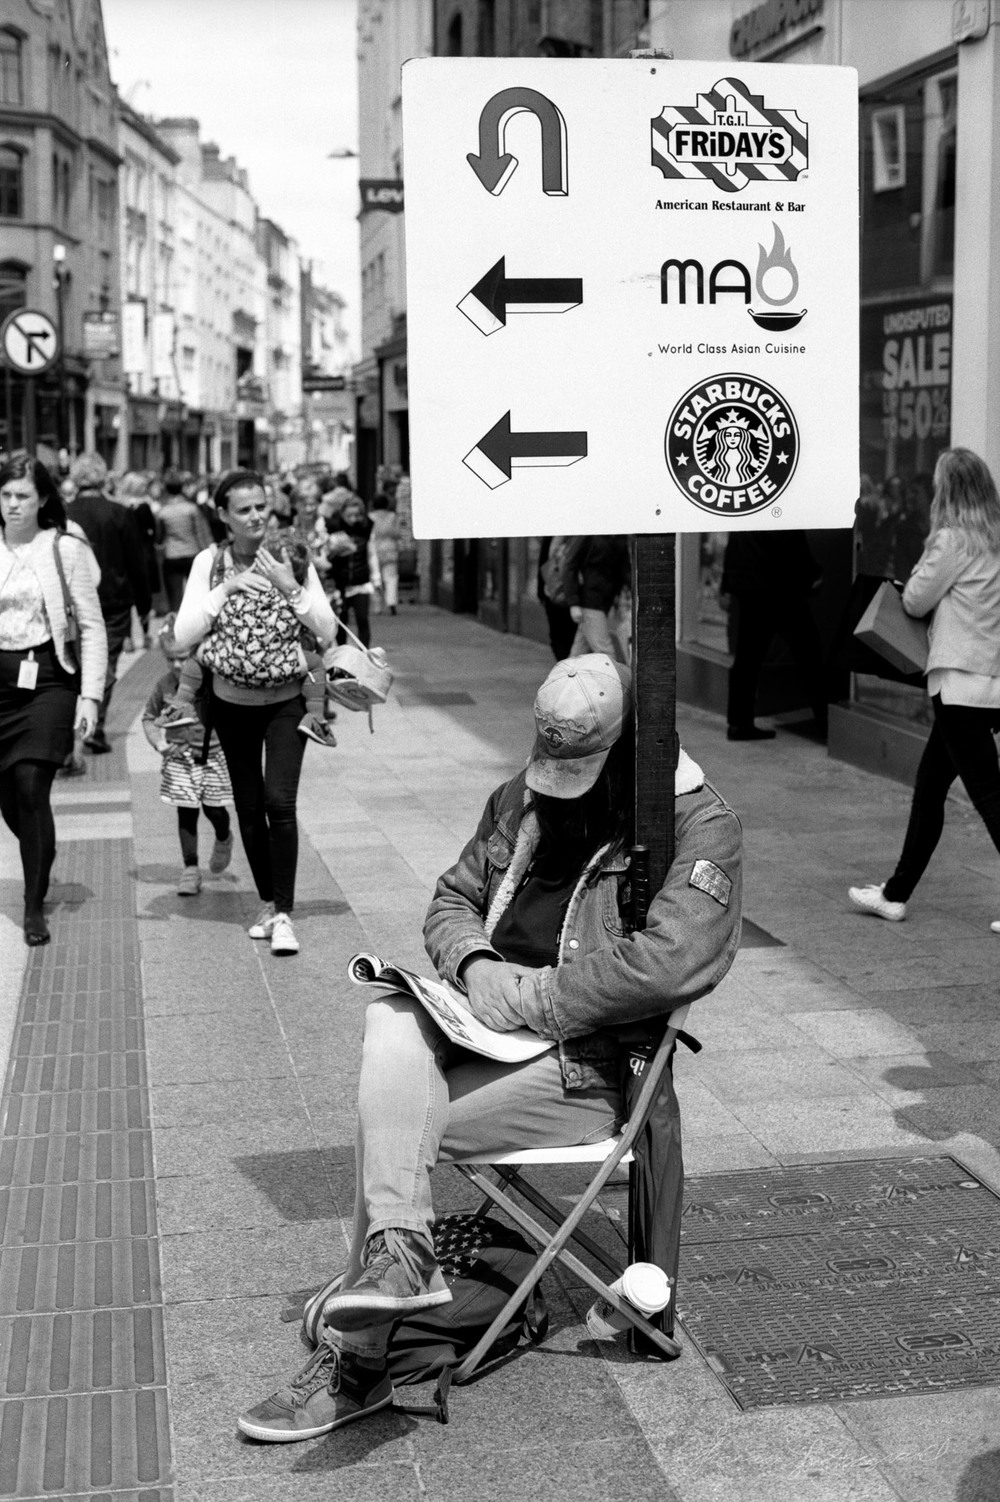 Guy-holding-sign-grafton-street.jpg